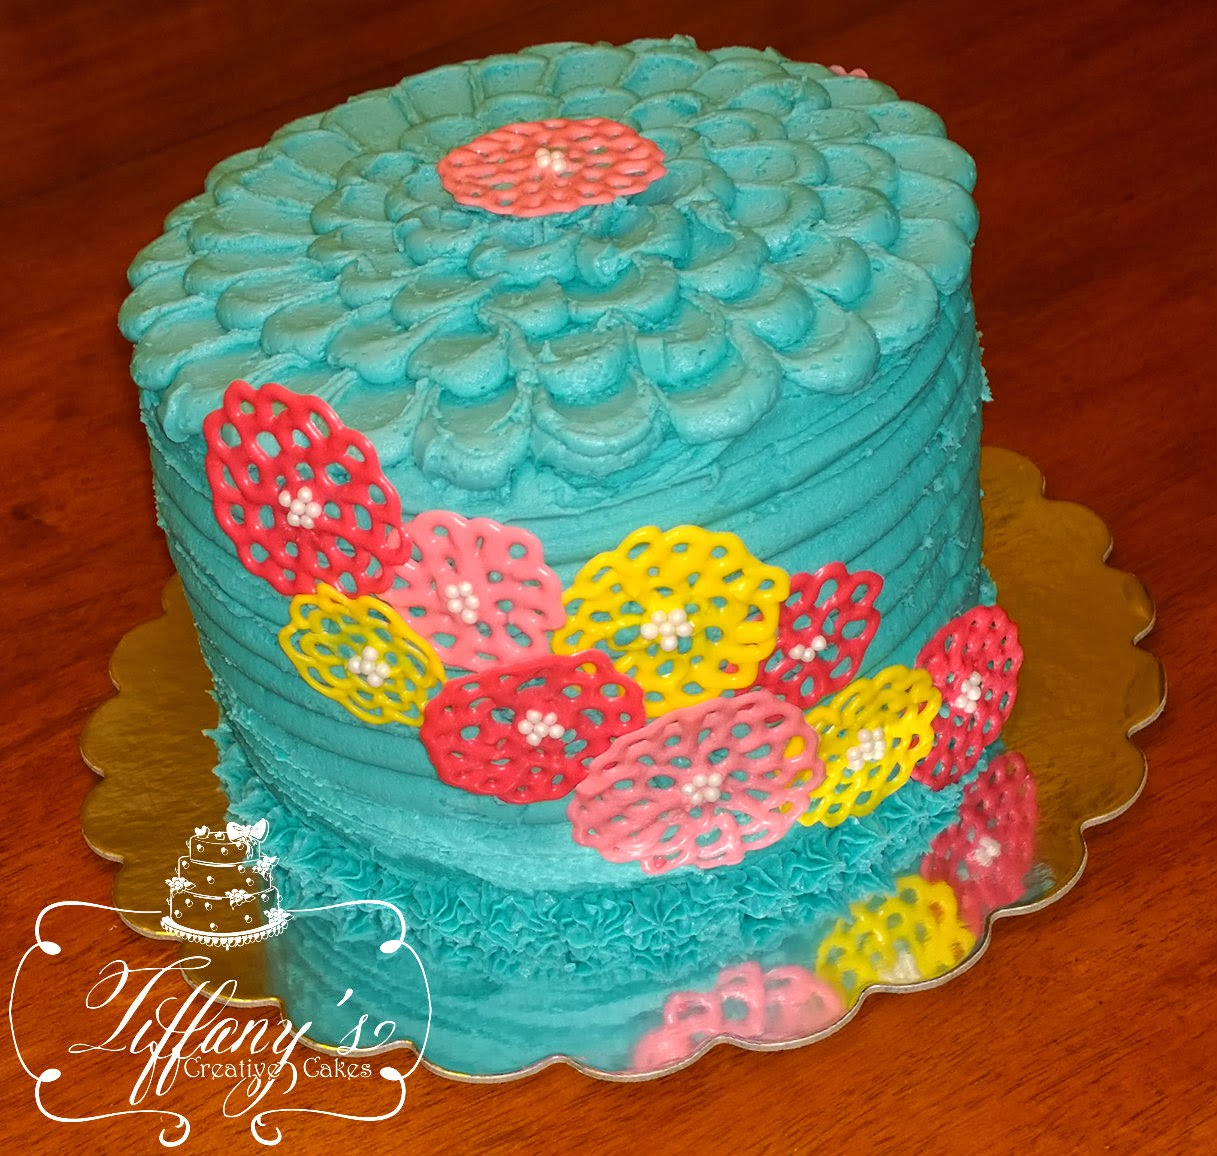 Chocolate Flowers Cake Decoration Telegraph : Aqua Double Barrel Cake with Chocolate Flowers Tiffany s ...